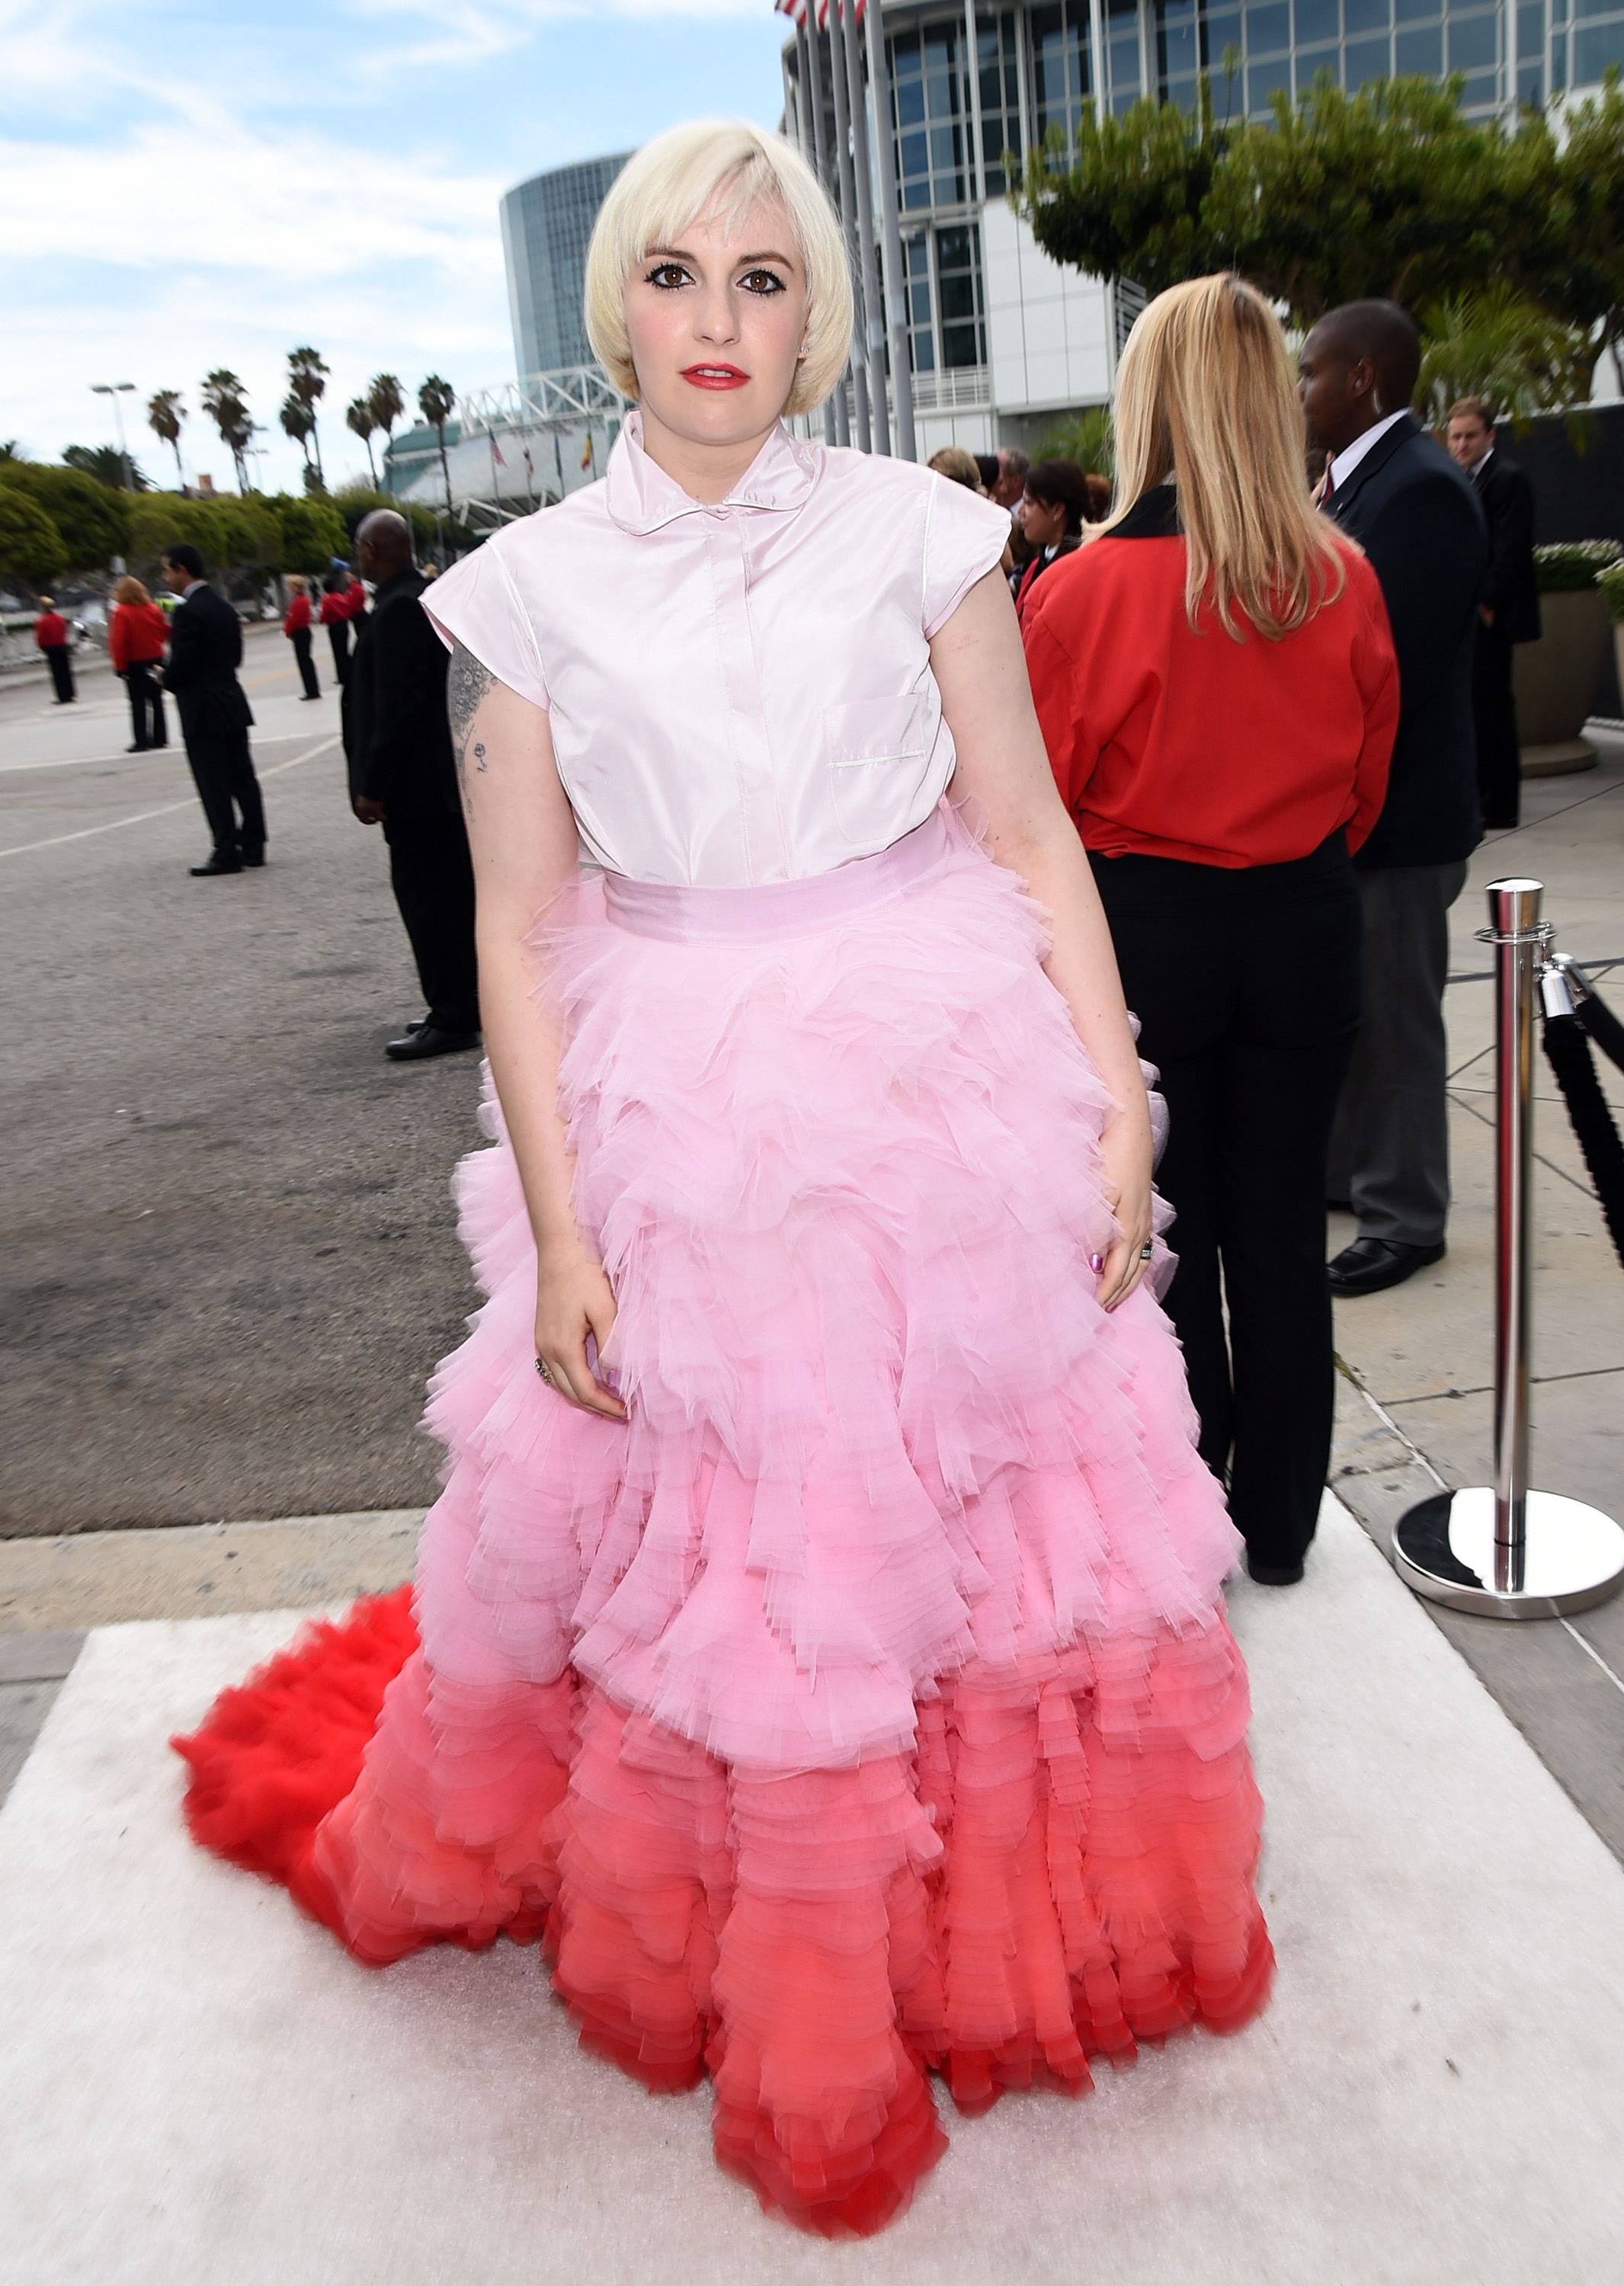 Dunham Lena emmys pictures recommend dress in winter in 2019